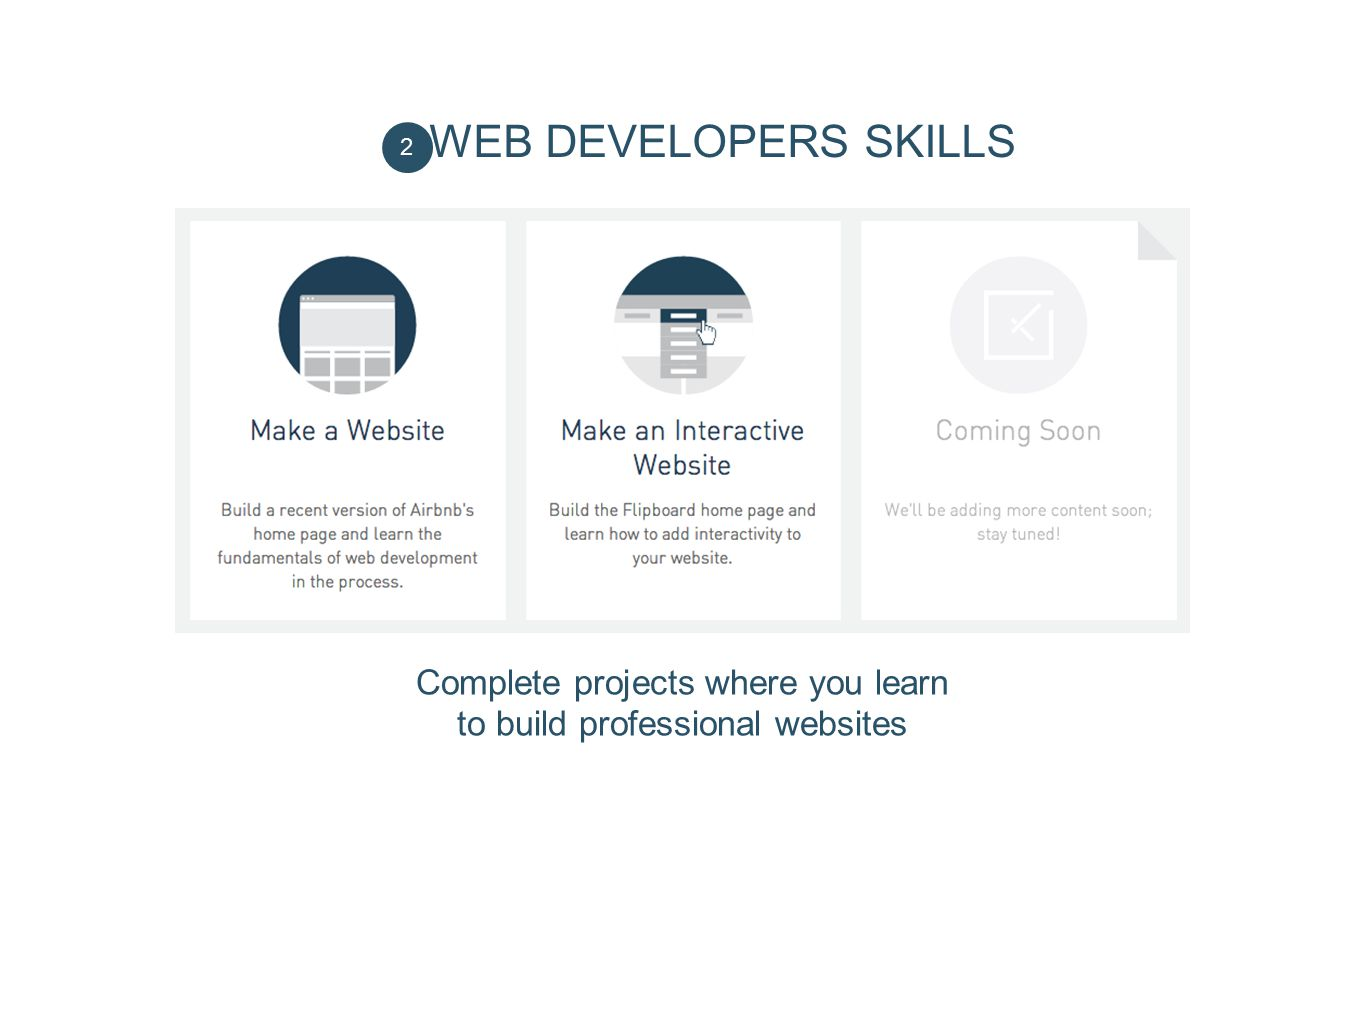 Complete projects where you learn to build professional websites